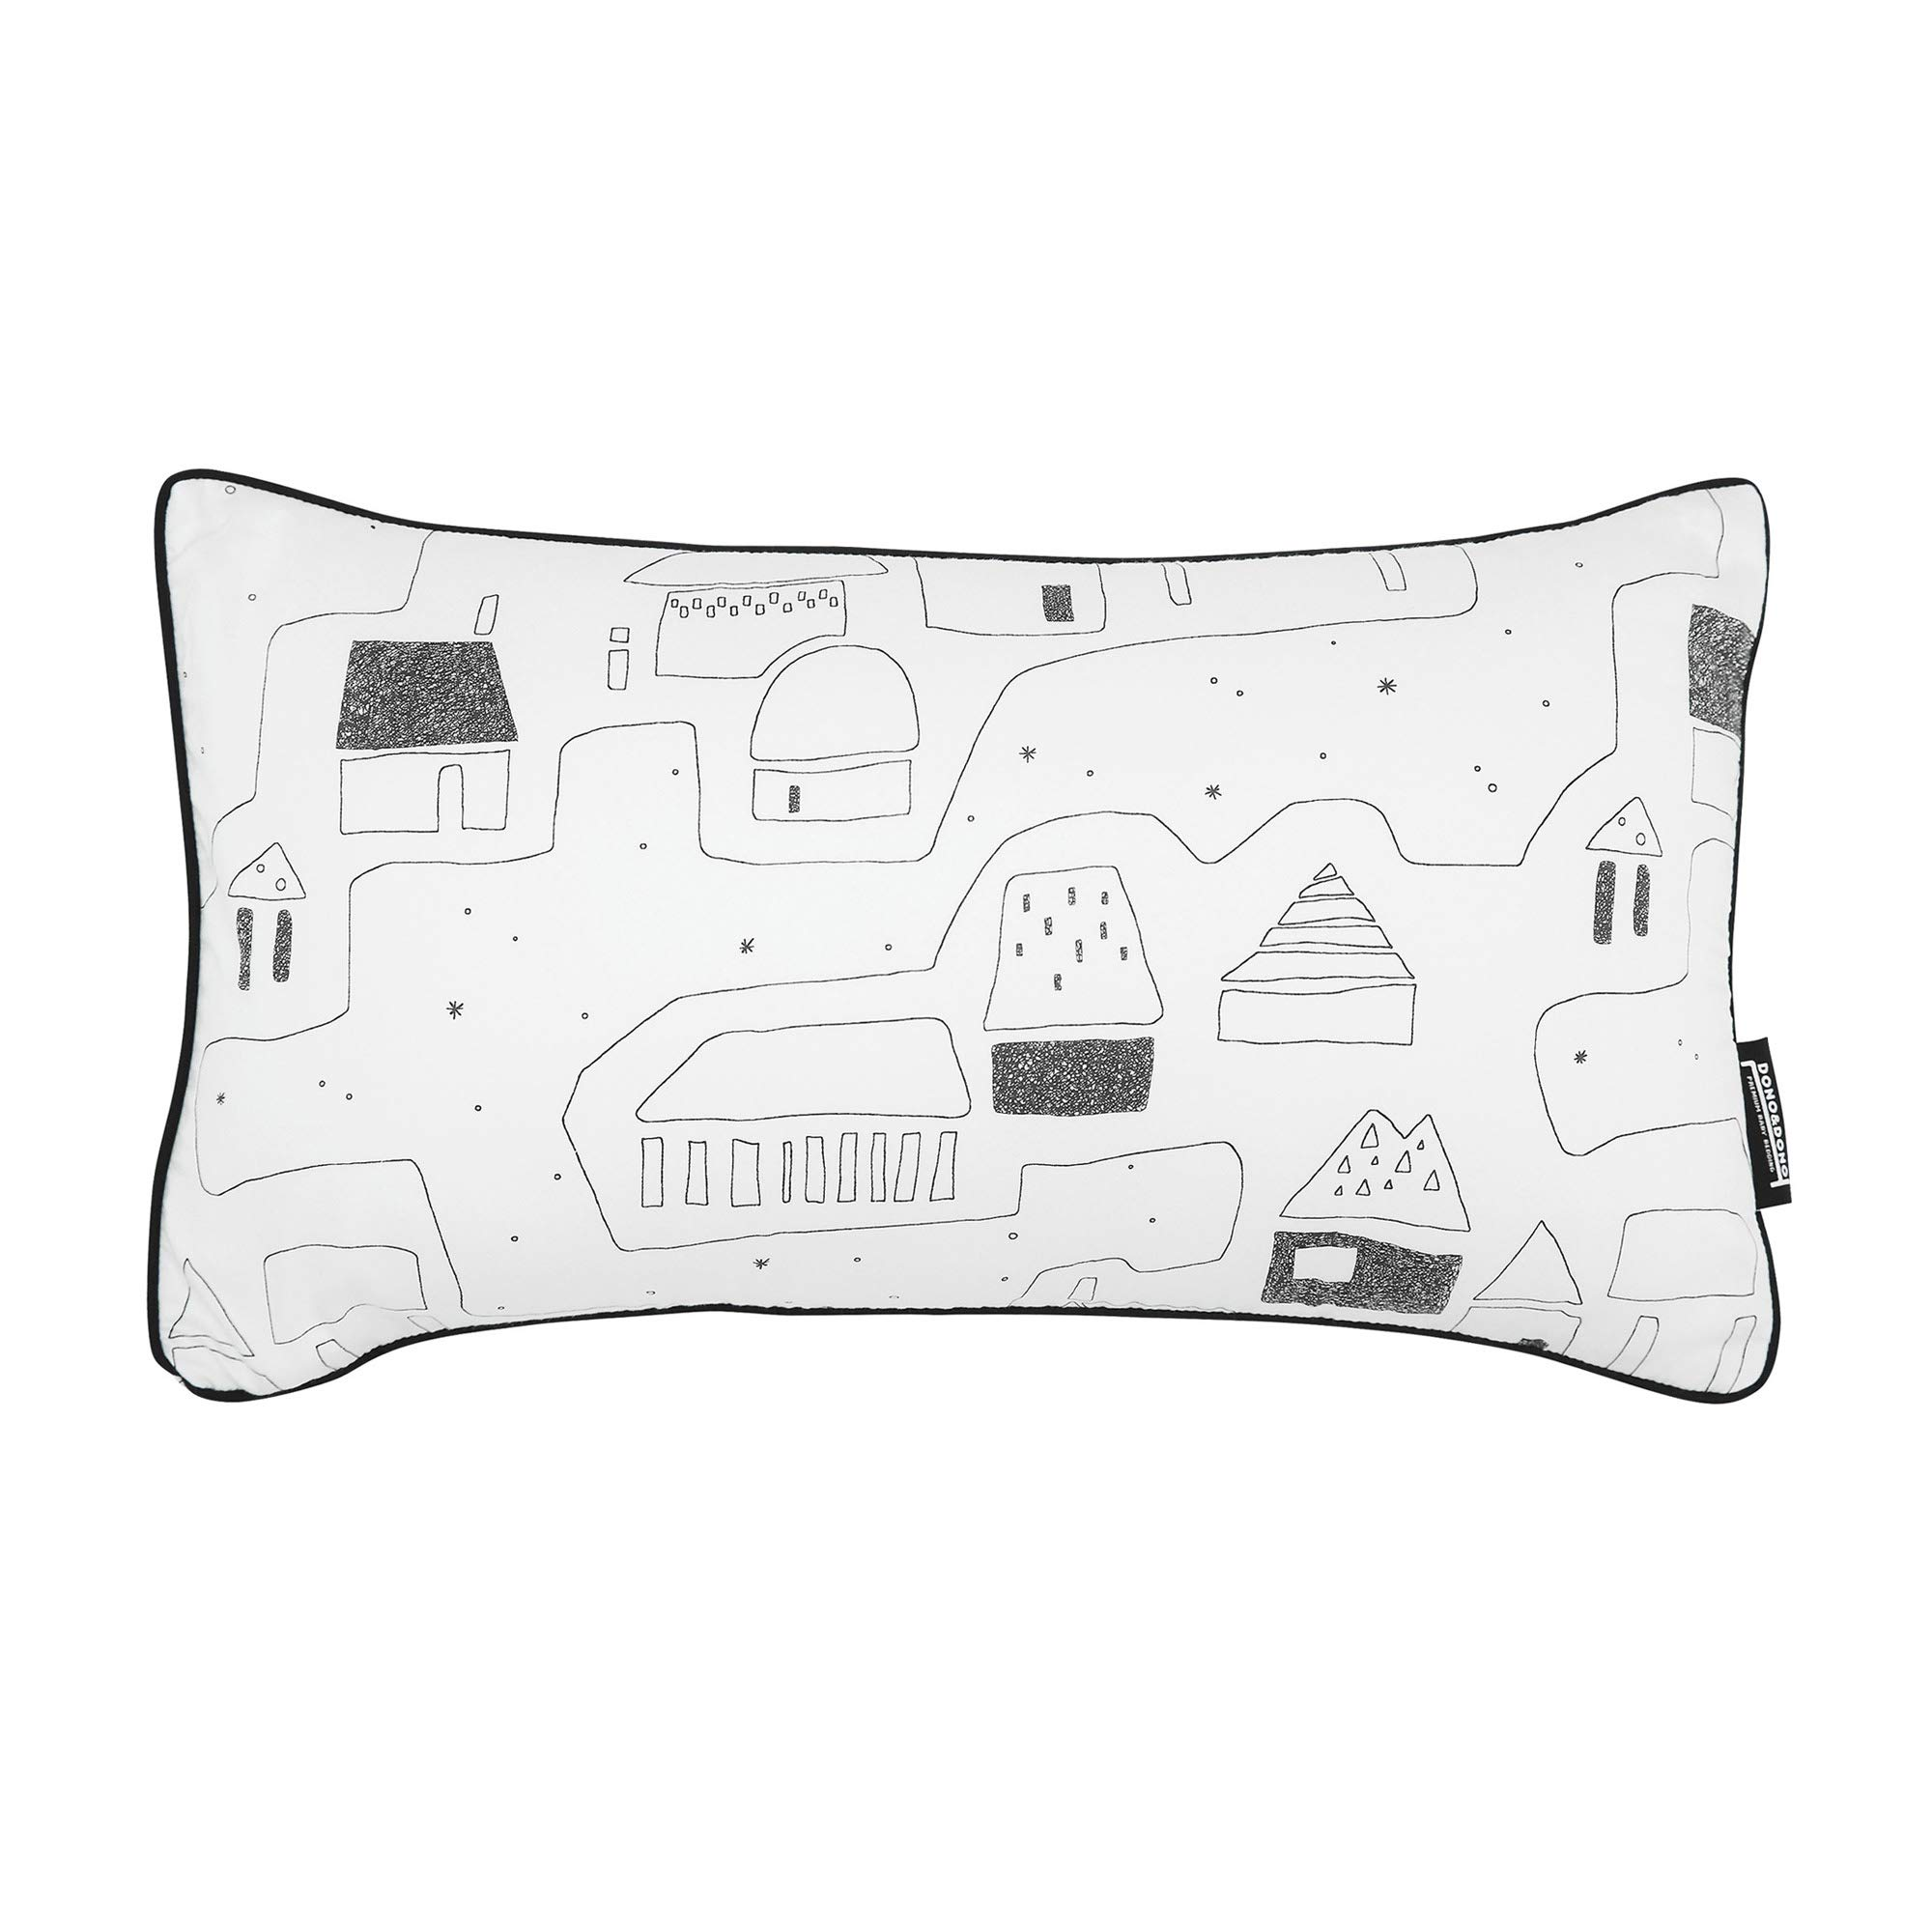 Dono&Dono Airflow Pillow and Pillowcase for Toddlers and Kids, Micromodal Moisture Wicking. (Petit Village)